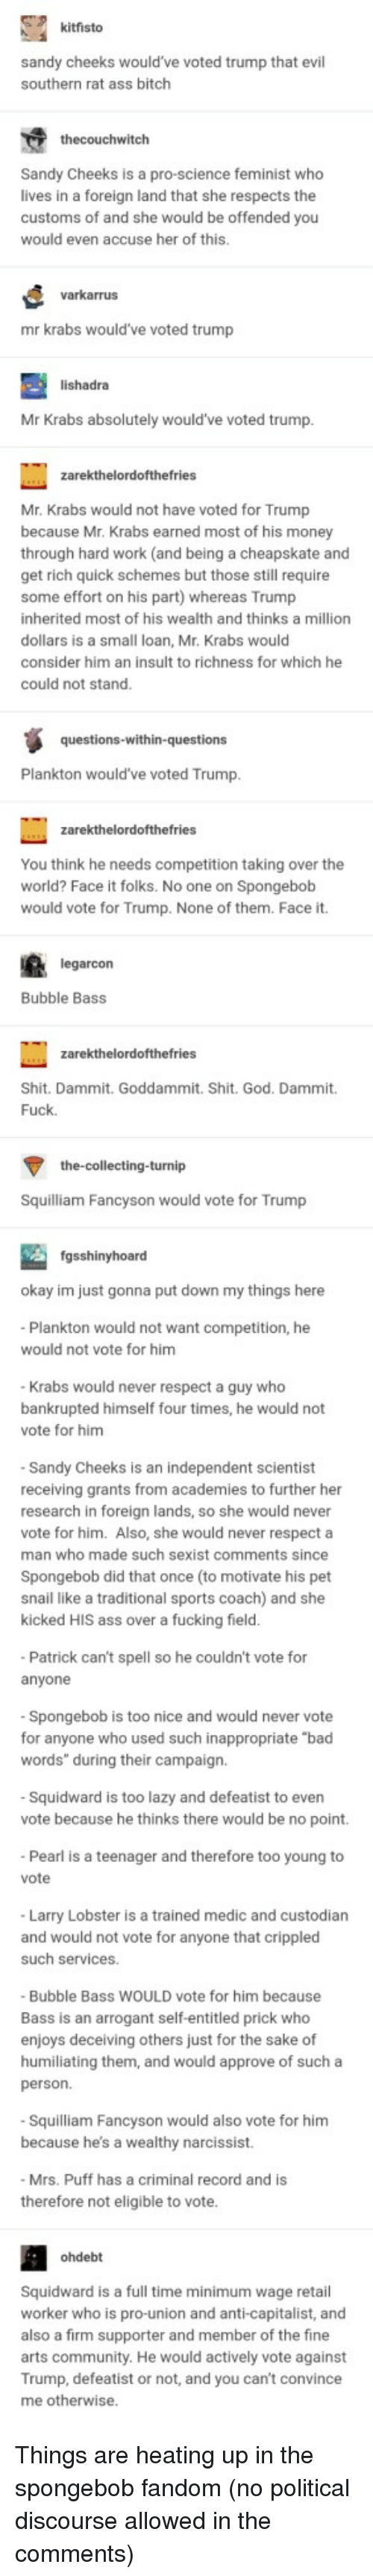 """Ass, Bad, and Bitch: kitfisto  sandy cheeks would've voted trump that evil  southern rat ass bitch  thecouchwitch  Sandy Cheeks is a pro-science feminist who  lives in a foreign land that she respects the  customs of and she would be offended you  would even accuse her of this.  varkarrus  mr krabs would've voted trump  lishadra  Mr Krabs absolutely would've voted trump  Mr. Krabs would not have voted for Trump  because Mr. Krabs earned most of his money  through hard work (and being a cheapskate and  get rich quick schemes but those still require  some effort on his part) whereas Trump  inherited most of his wealth and thinks a million  dollars is a small loan, Mr. Krabs would  consider him an insult to richness for which he  could not stand  Plankton would've voted Trump  You think he needs competition taking over the  world? Face it folks. No one on Spongebob  would vote for Trump. None of them. Face it.  arcon  Bubble Bass  Shit. Dammit. Goddammit. Shit. God. Dammit.  Fuck  the-collecting-turnip  Squilliam Fancyson would vote for Trump  fgsshinyhoard  okay im just gonna put down my things here  Plankton would not want competition, he  would not vote for him  Krabs would never respect a guy who  bankrupted himself four times, he would not  vote for him  Sandy Cheeks is an independent scientist  receiving grants from academies to further her  research in foreign lands, so she would never  vote for him. Also, she would never respect a  man who made such sexist comments since  Spongebob did that once (to motivate his pet  snail like a traditional sports coach) and she  kicked HIS ass over a fucking field  Patrick can't spell so he couldn't vote for  anyone  Spongebob is too nice and would never vote  for anyone who used such inappropriate """"bad  words"""" during their campaign.  Squidward is too lazy and defeatist to even  vote because he thinks there would be no point.  Pearl is a teenager and therefore too young to  vote  Larry Lobster is a trained medic and custodian"""